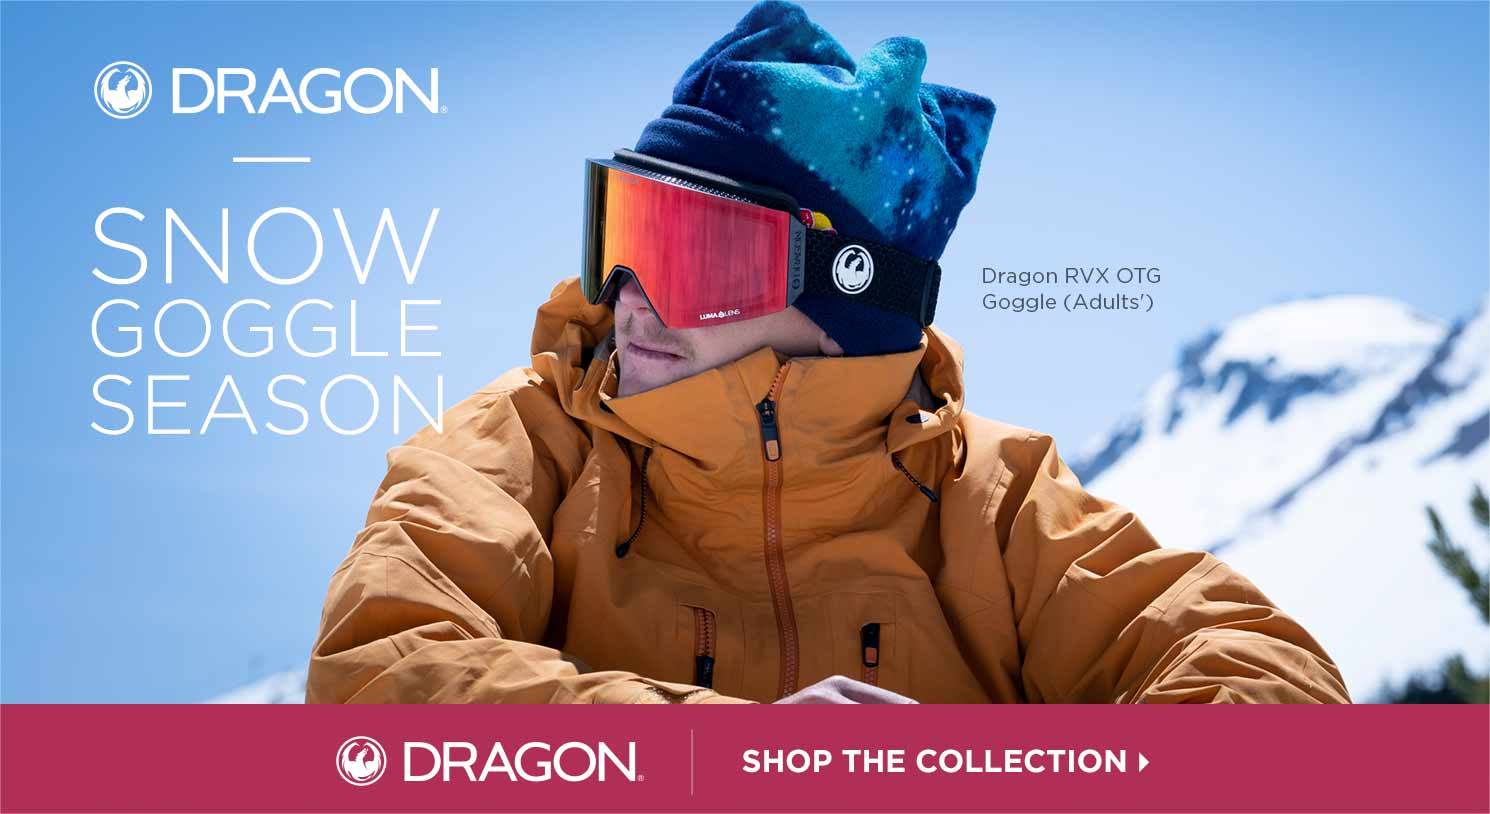 Dragon: Snow Goggle Season